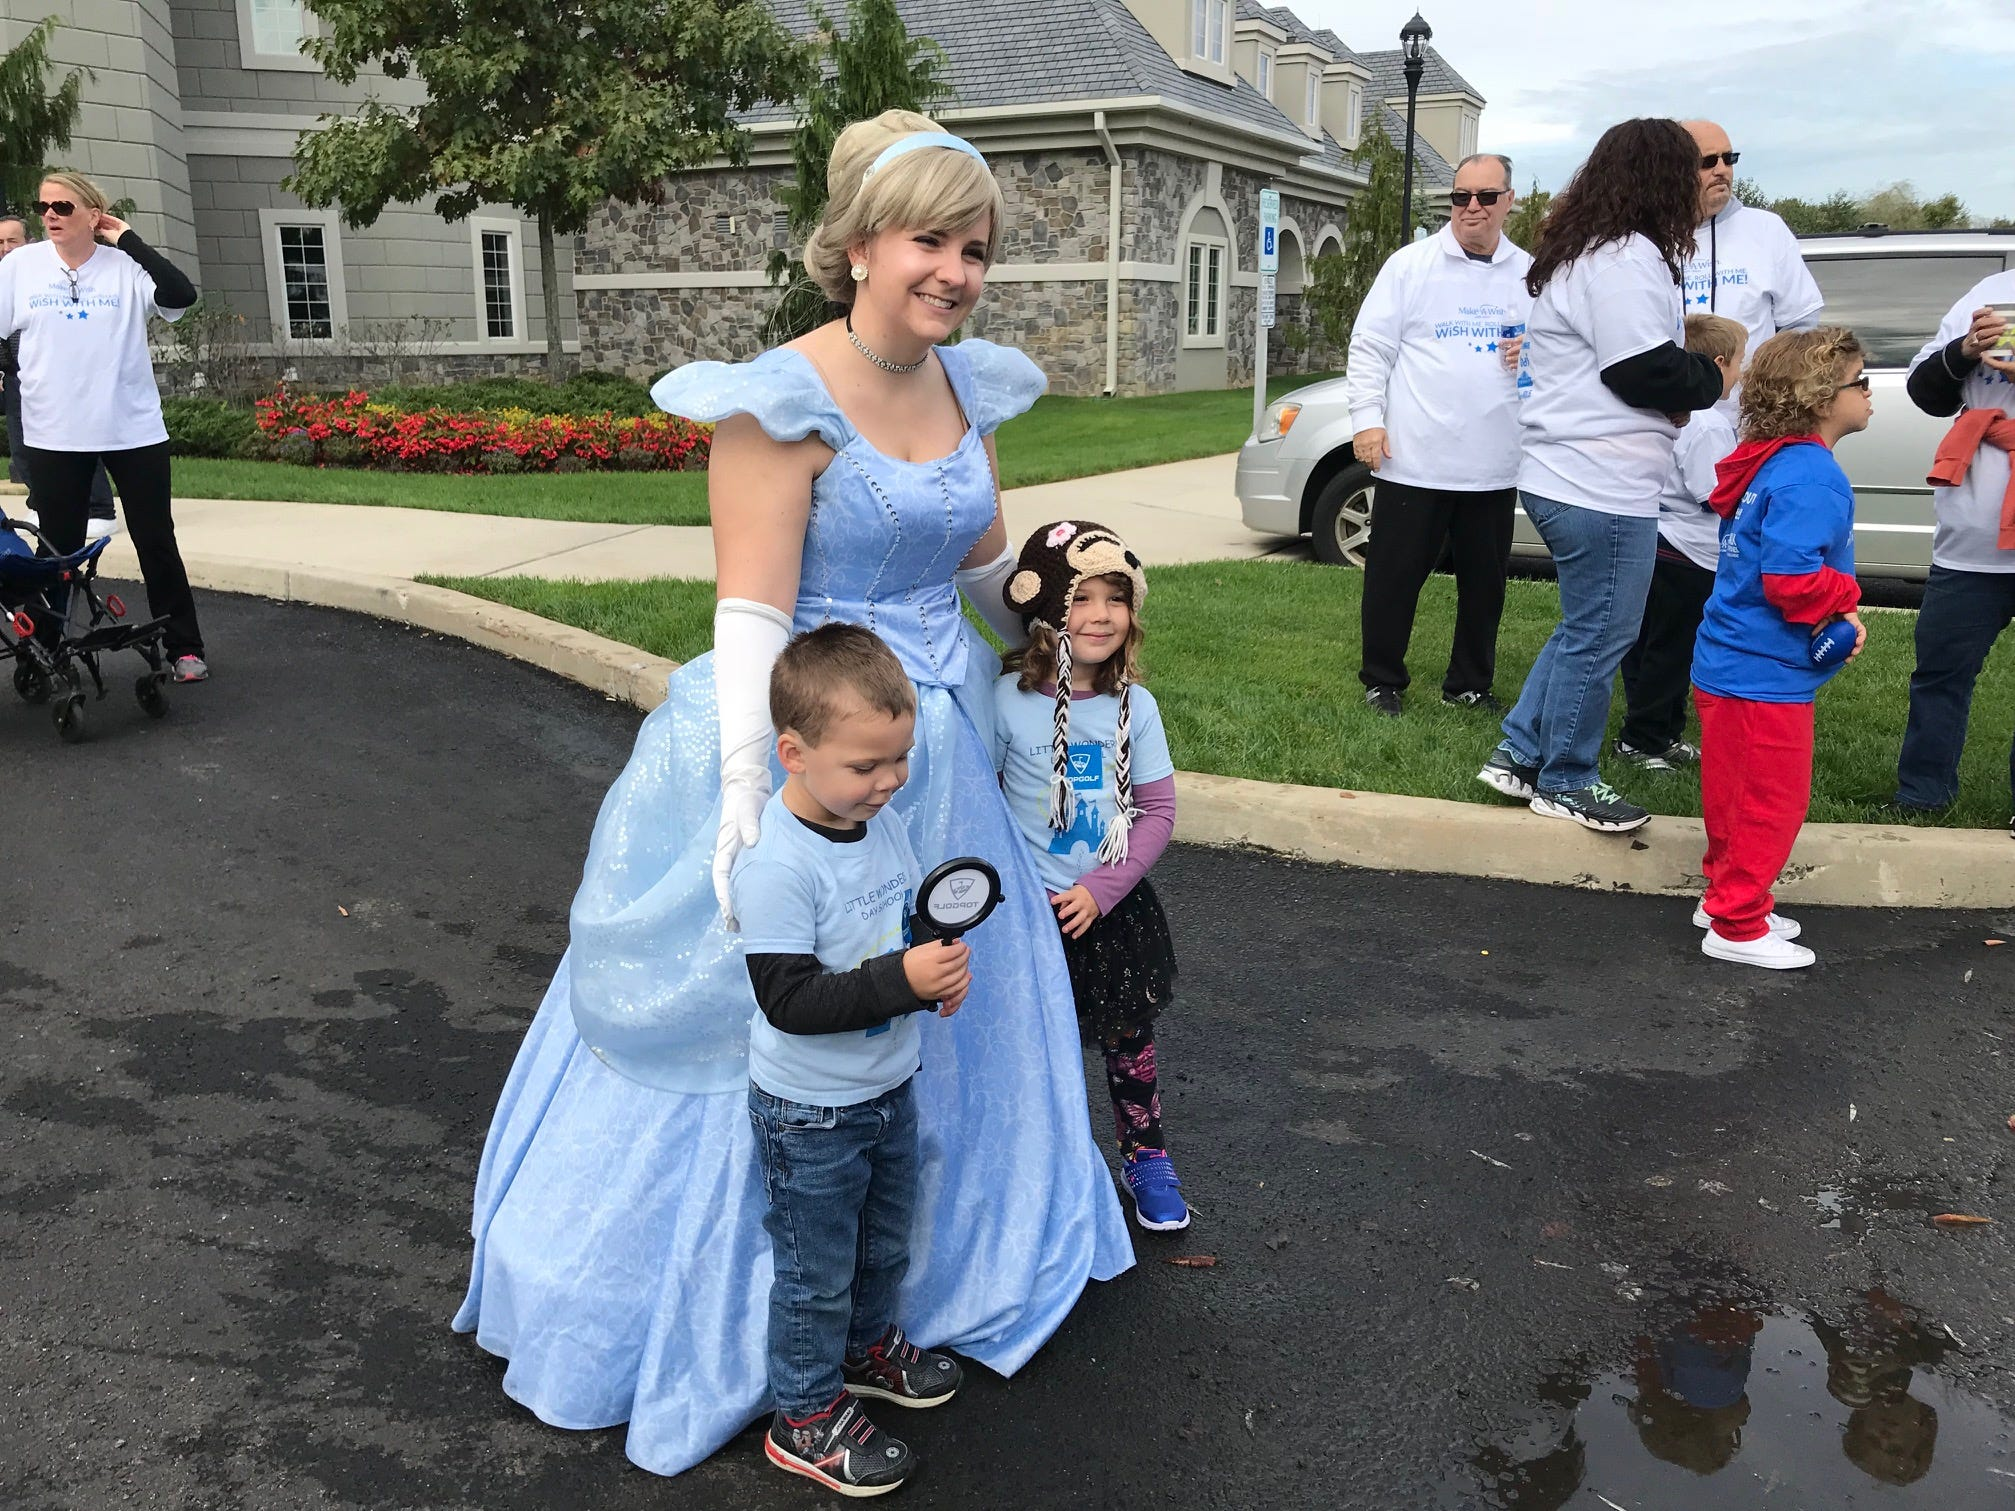 """On October 14, Make-A-Wish New Jersey will hosted its annual """"Walk & Roll for Wishes"""" at the Samuel & Josephine Plumeri Wishing Place in Monroe Township, a magical and whimsical  wish-granting facility that Make-A-Wish New Jersey calls home. Attended by more than 800 people, including 35 Wish families and their teams, the event raised vital funds needed for their mission to create life-changing wishes for children with critical illnesses. Make-A-Wish New Jersey broke records in their last fiscal year - granting 560 wishes."""